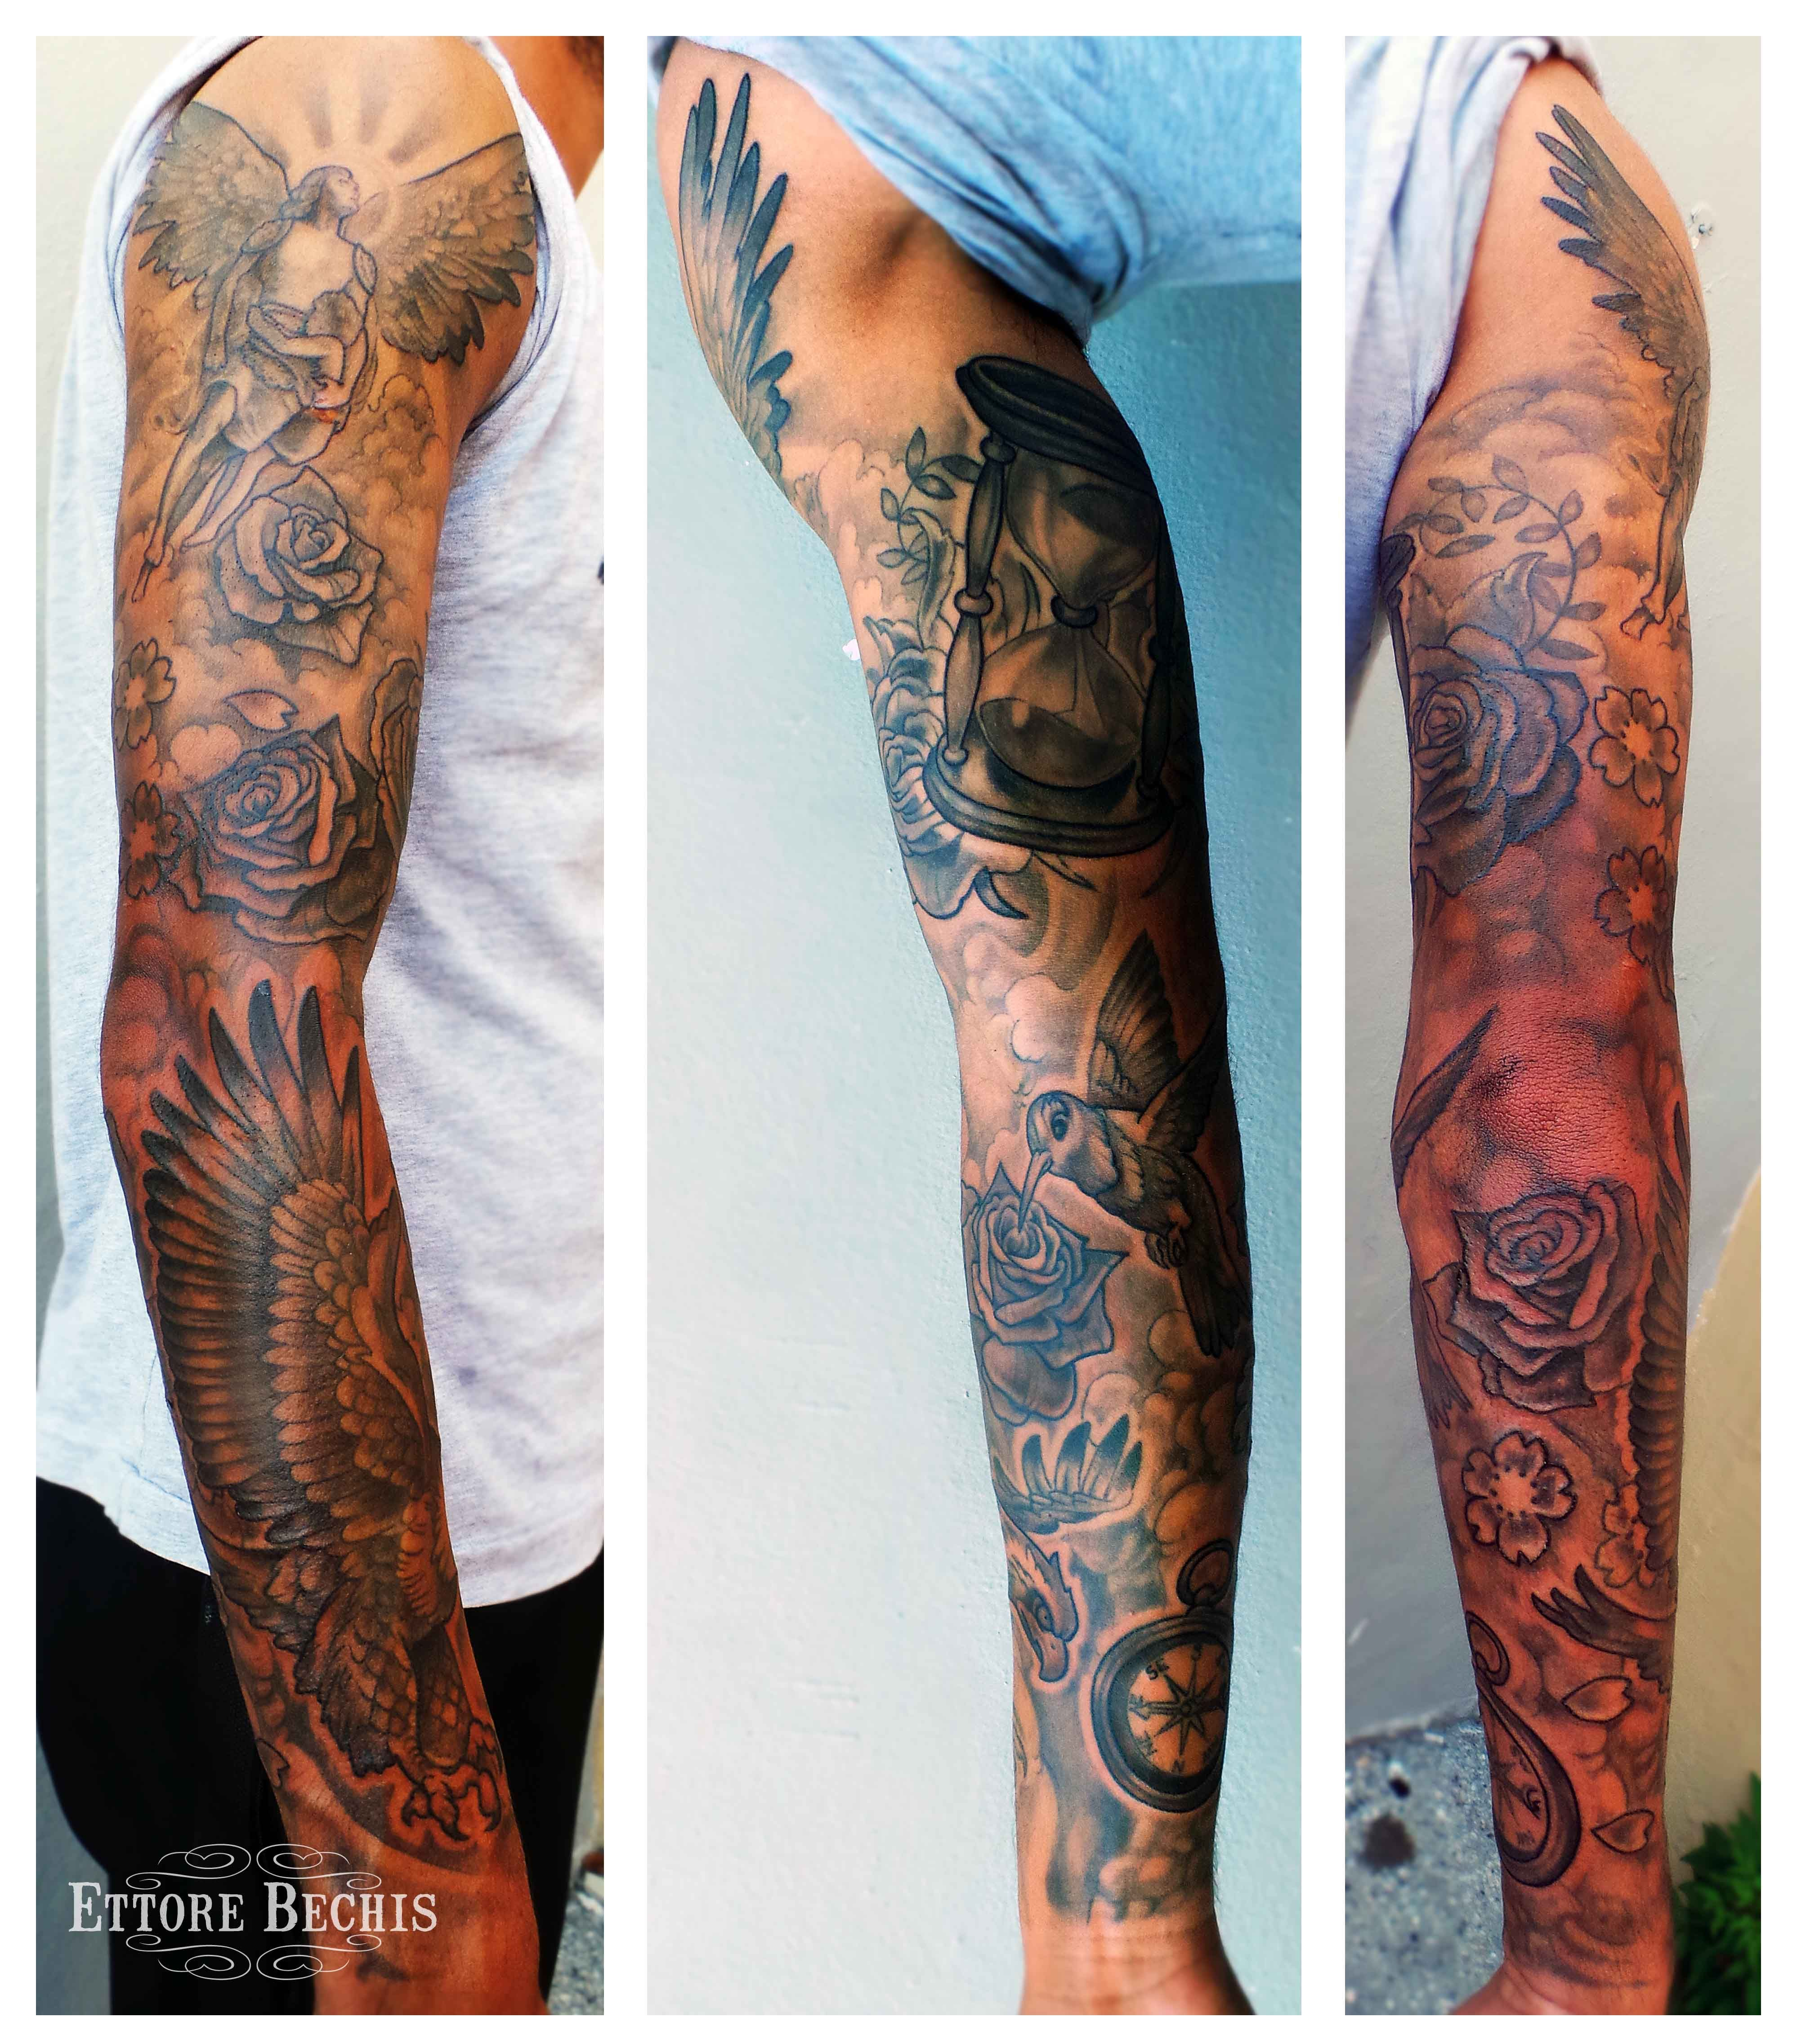 Www Ettore Bechis Best Miami Tattoo Full Sleeve